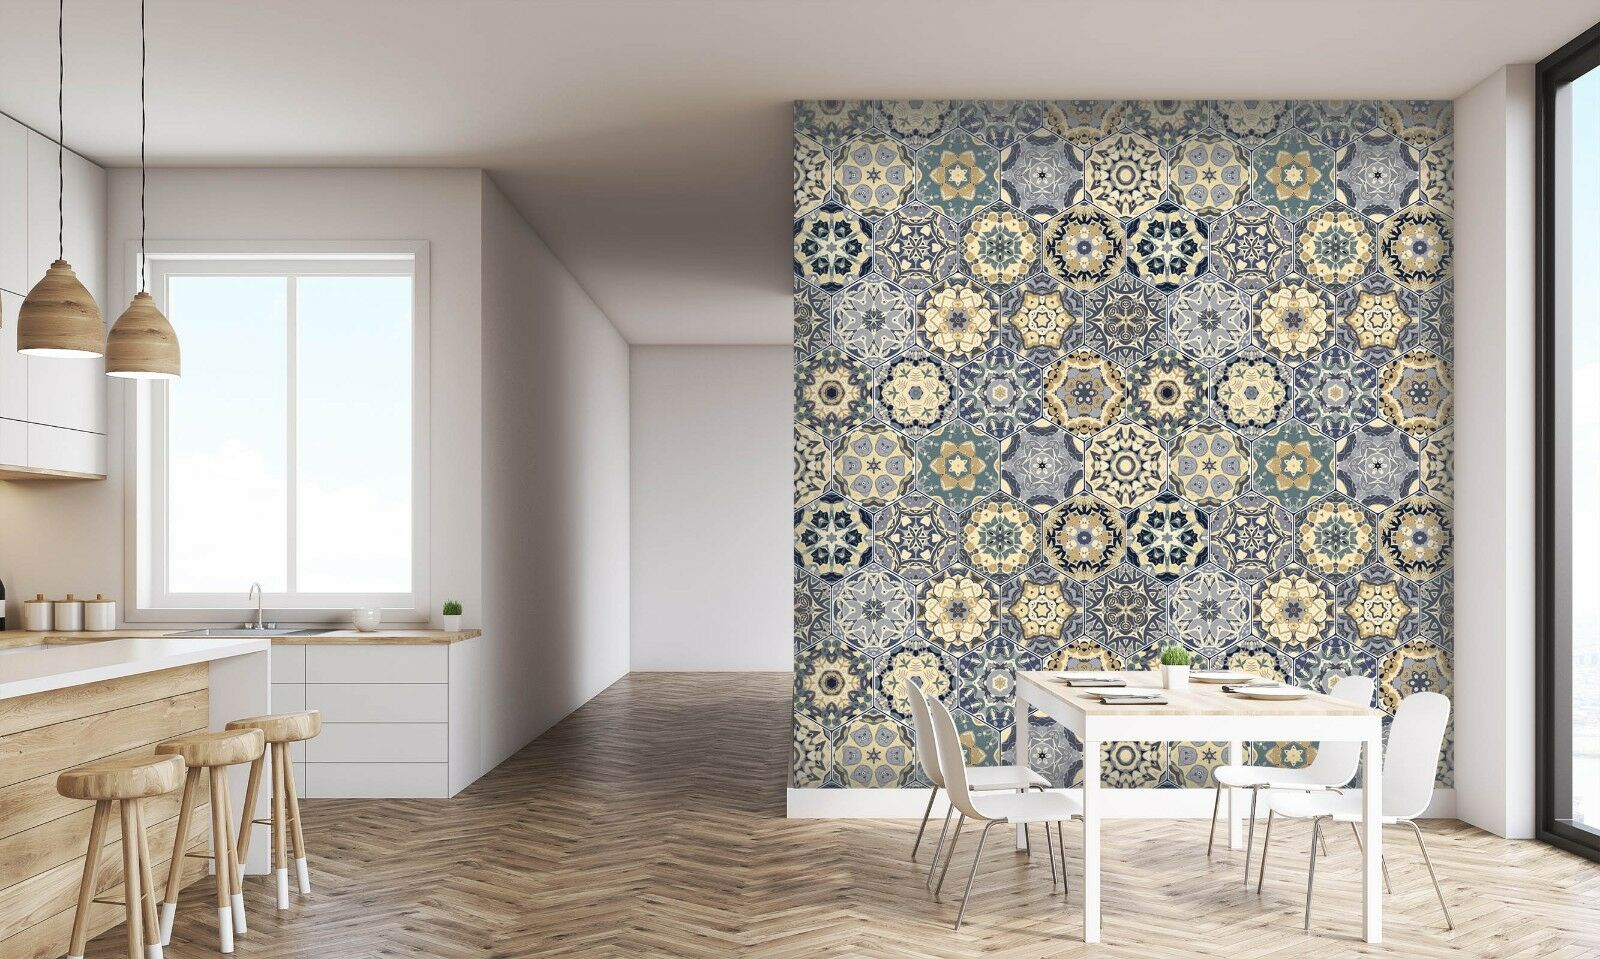 3D Marble Floral 21 Texture Tiles Marble Wall Paper Decal Wallpaper Mural AJ UK